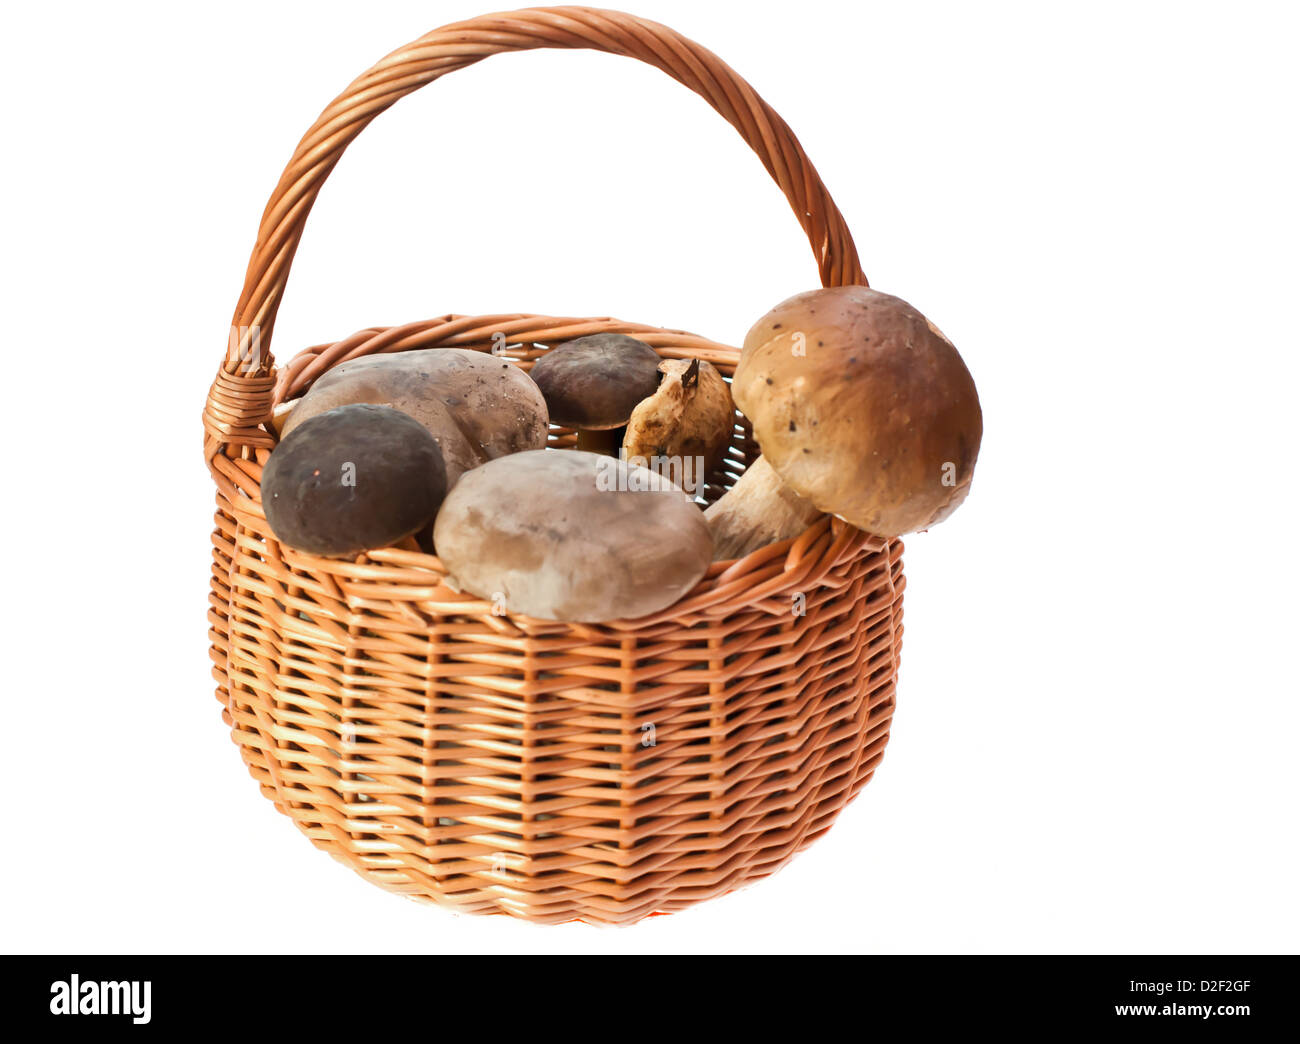 Raw, Isolated Objects, Nature, Delicates, Basket, Food, Fungus, Food And Drink, Brown, Freshness, Cepe, Studio Tasty - Stock Image